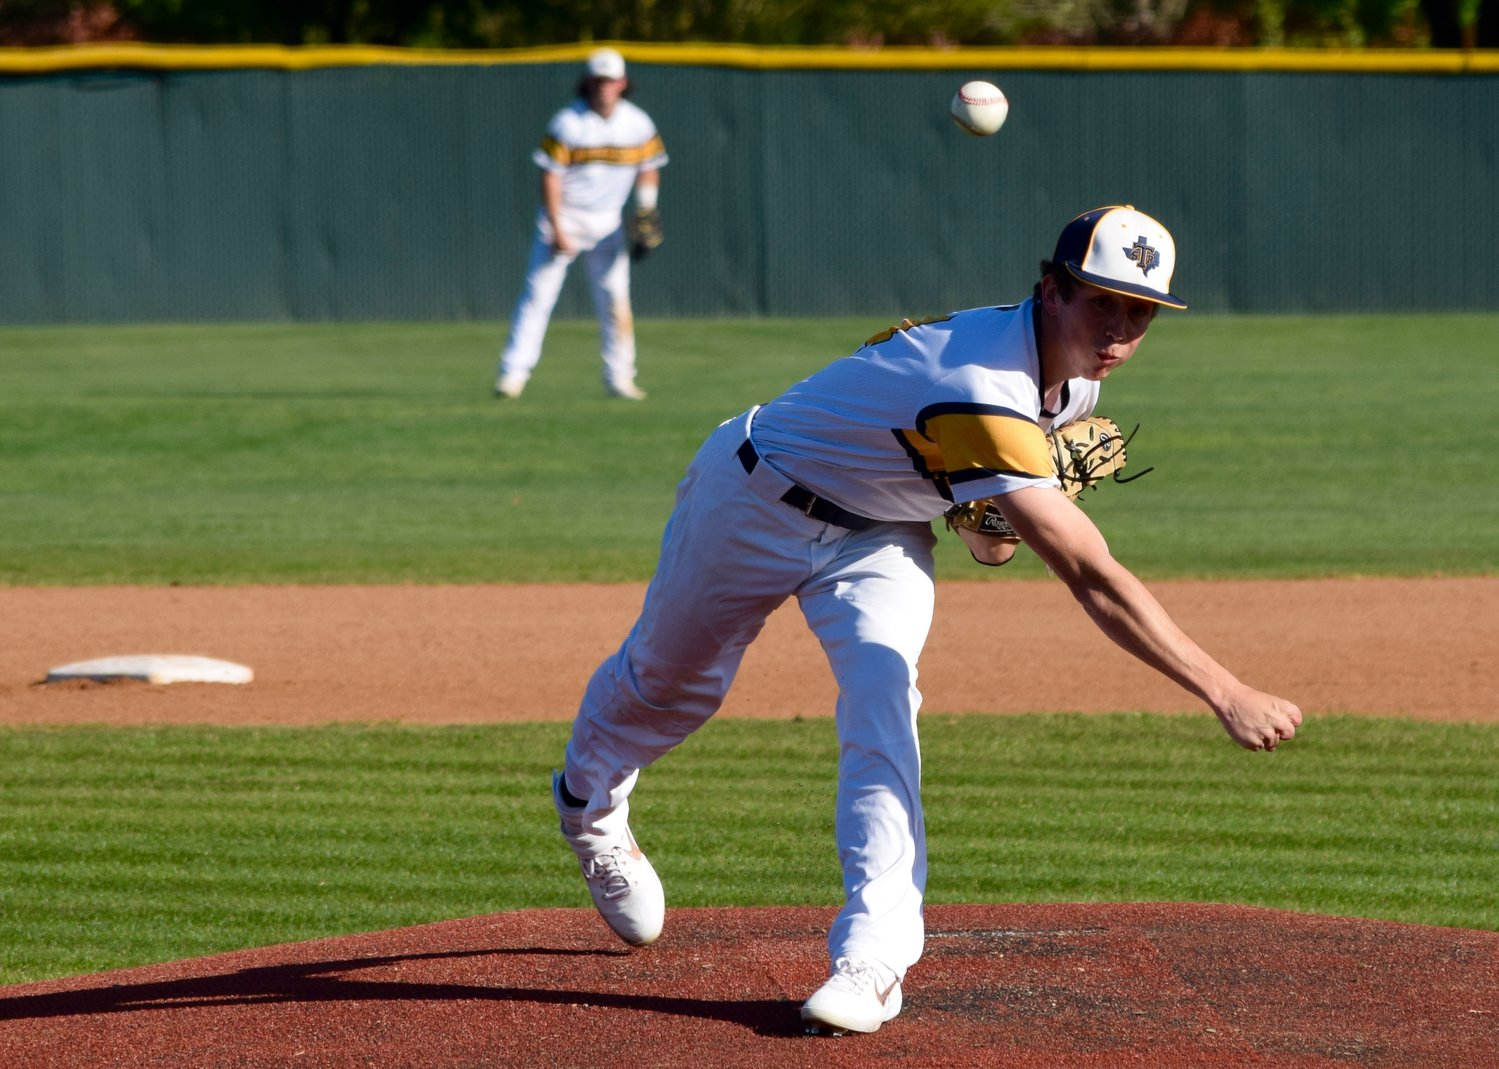 Carter Poulson and Stony Point beat Round Rock 8-3 at home on Monday afternoon.